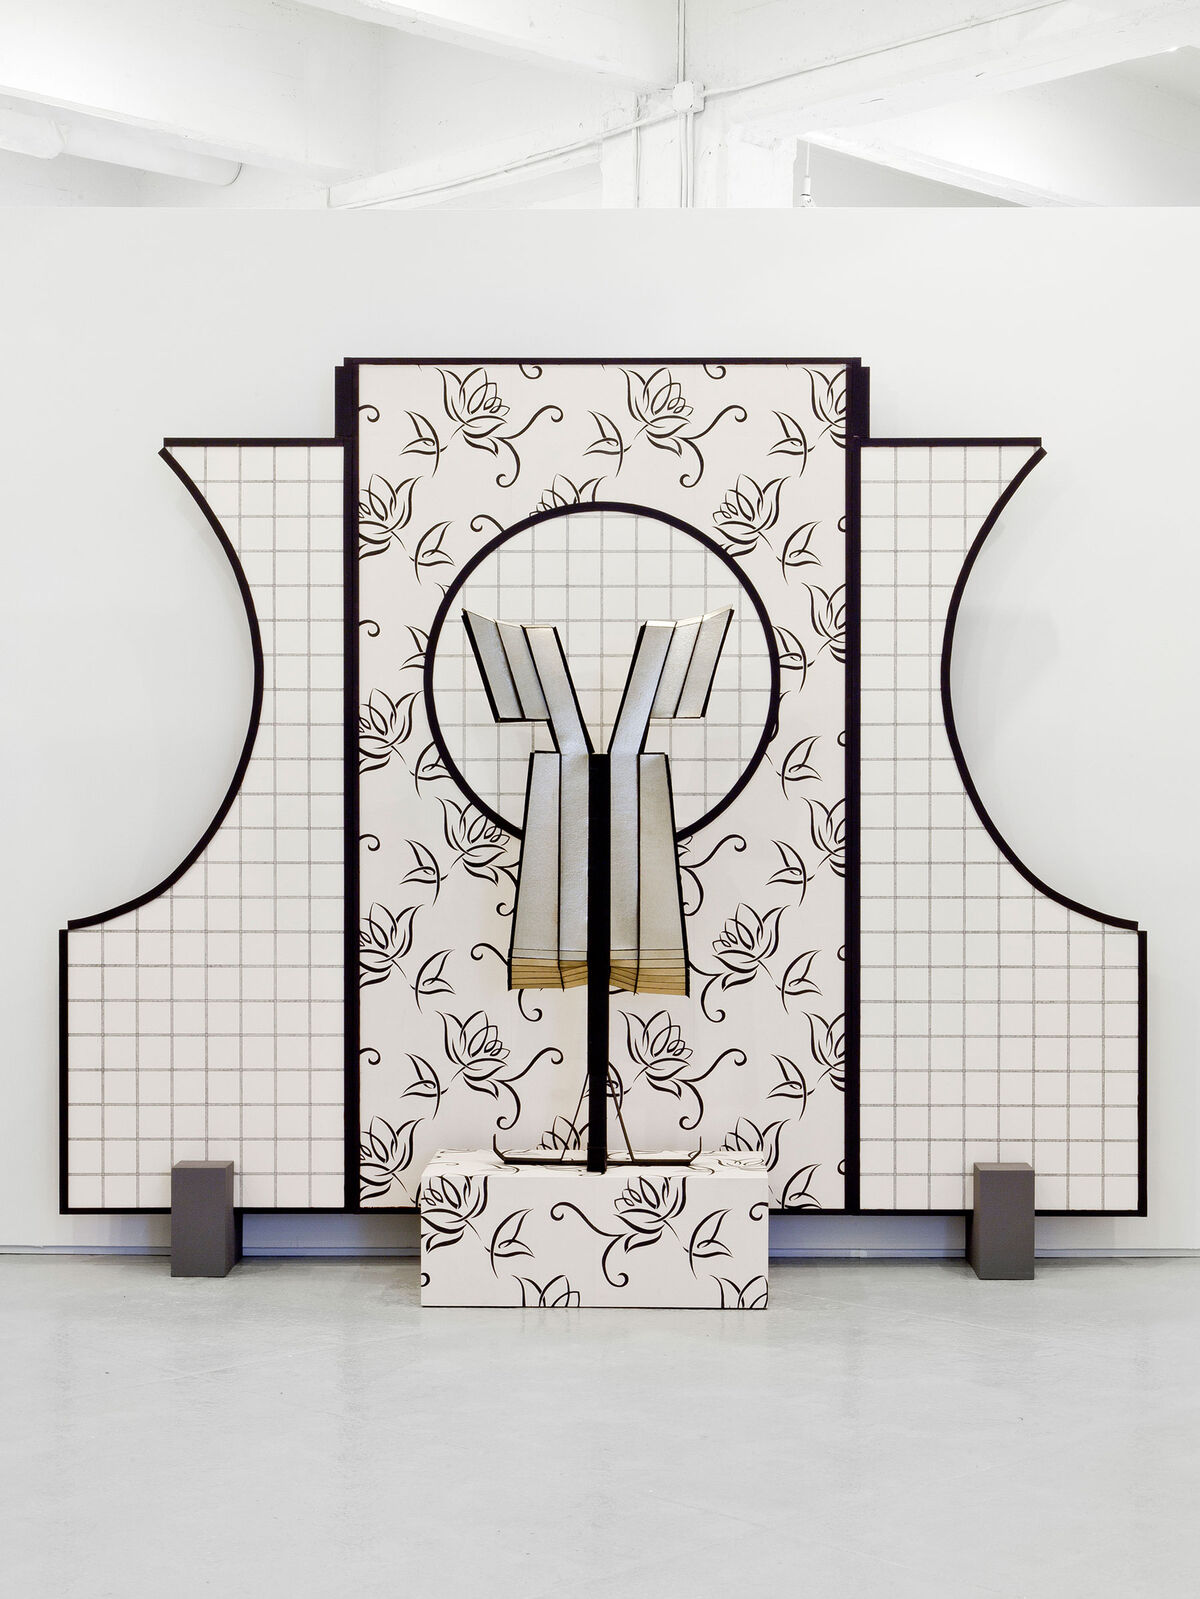 Diane Simpson, Window 4, Window Dressing: Apron VI, 2003/2007. Courtesy of the artist; Corbett vs. Dempsey, Chicago; and JTT, New York.